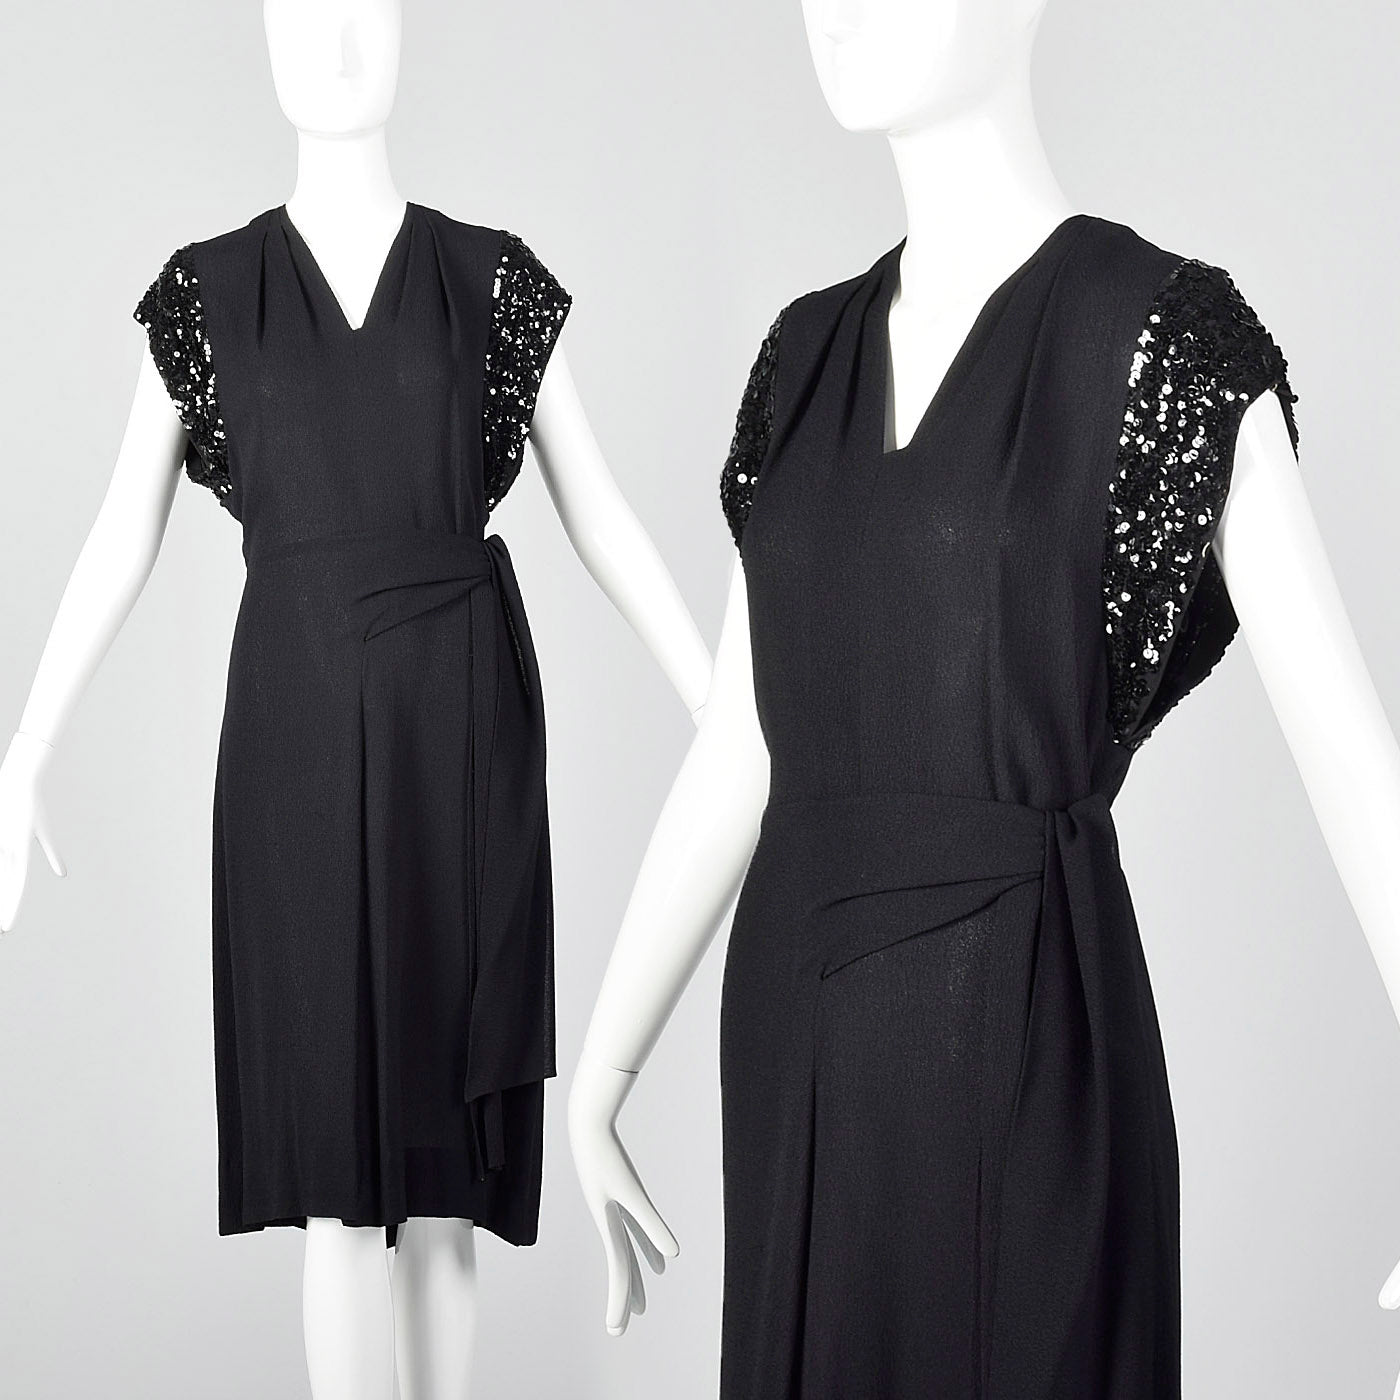 1940s Black Rayon Dress with Sequin Sleeves